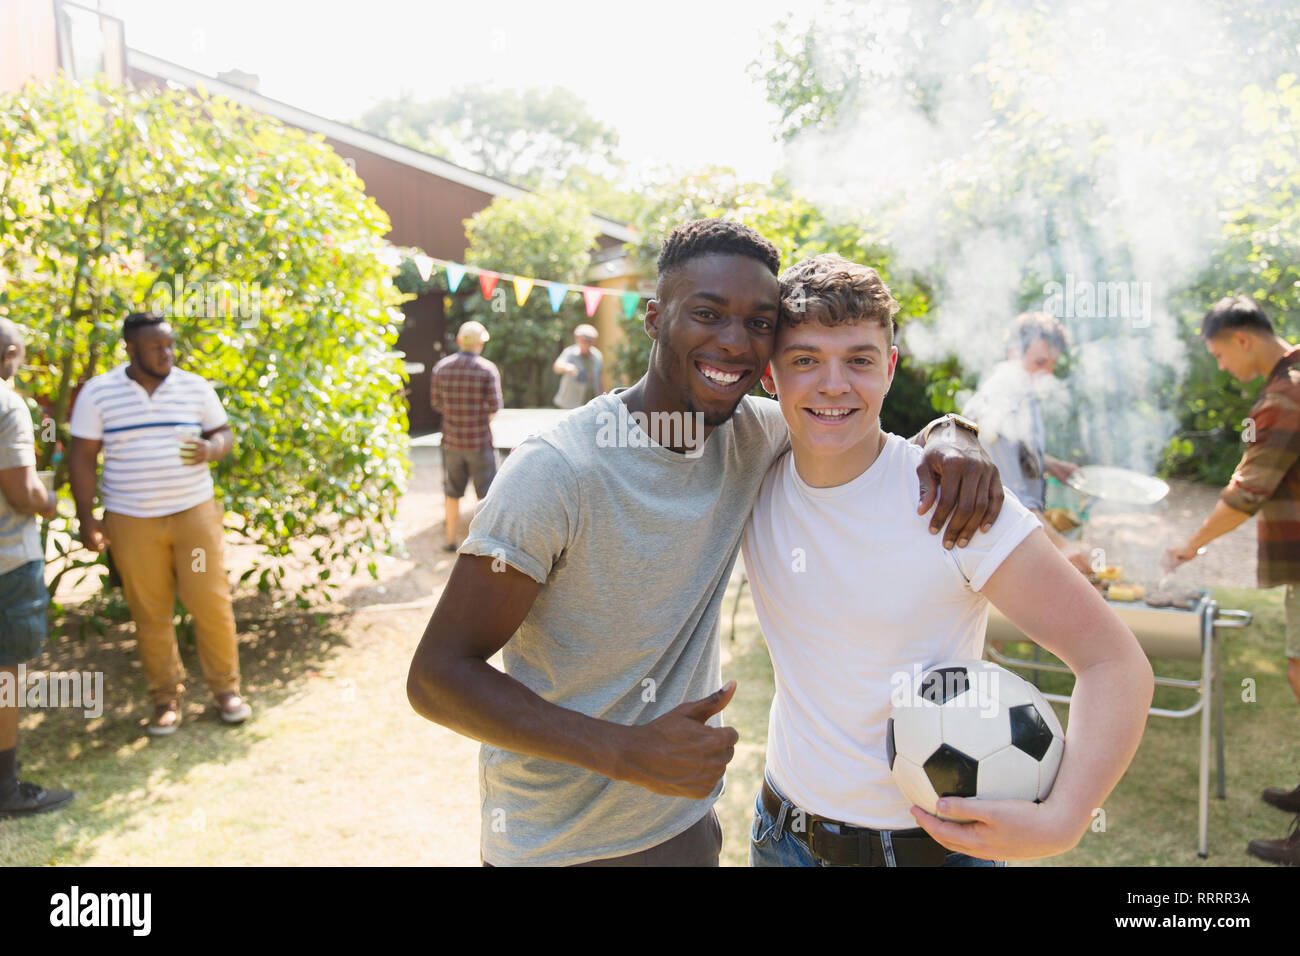 Portrait confident young men with soccer ball enjoying backyard barbecue Stock Photo